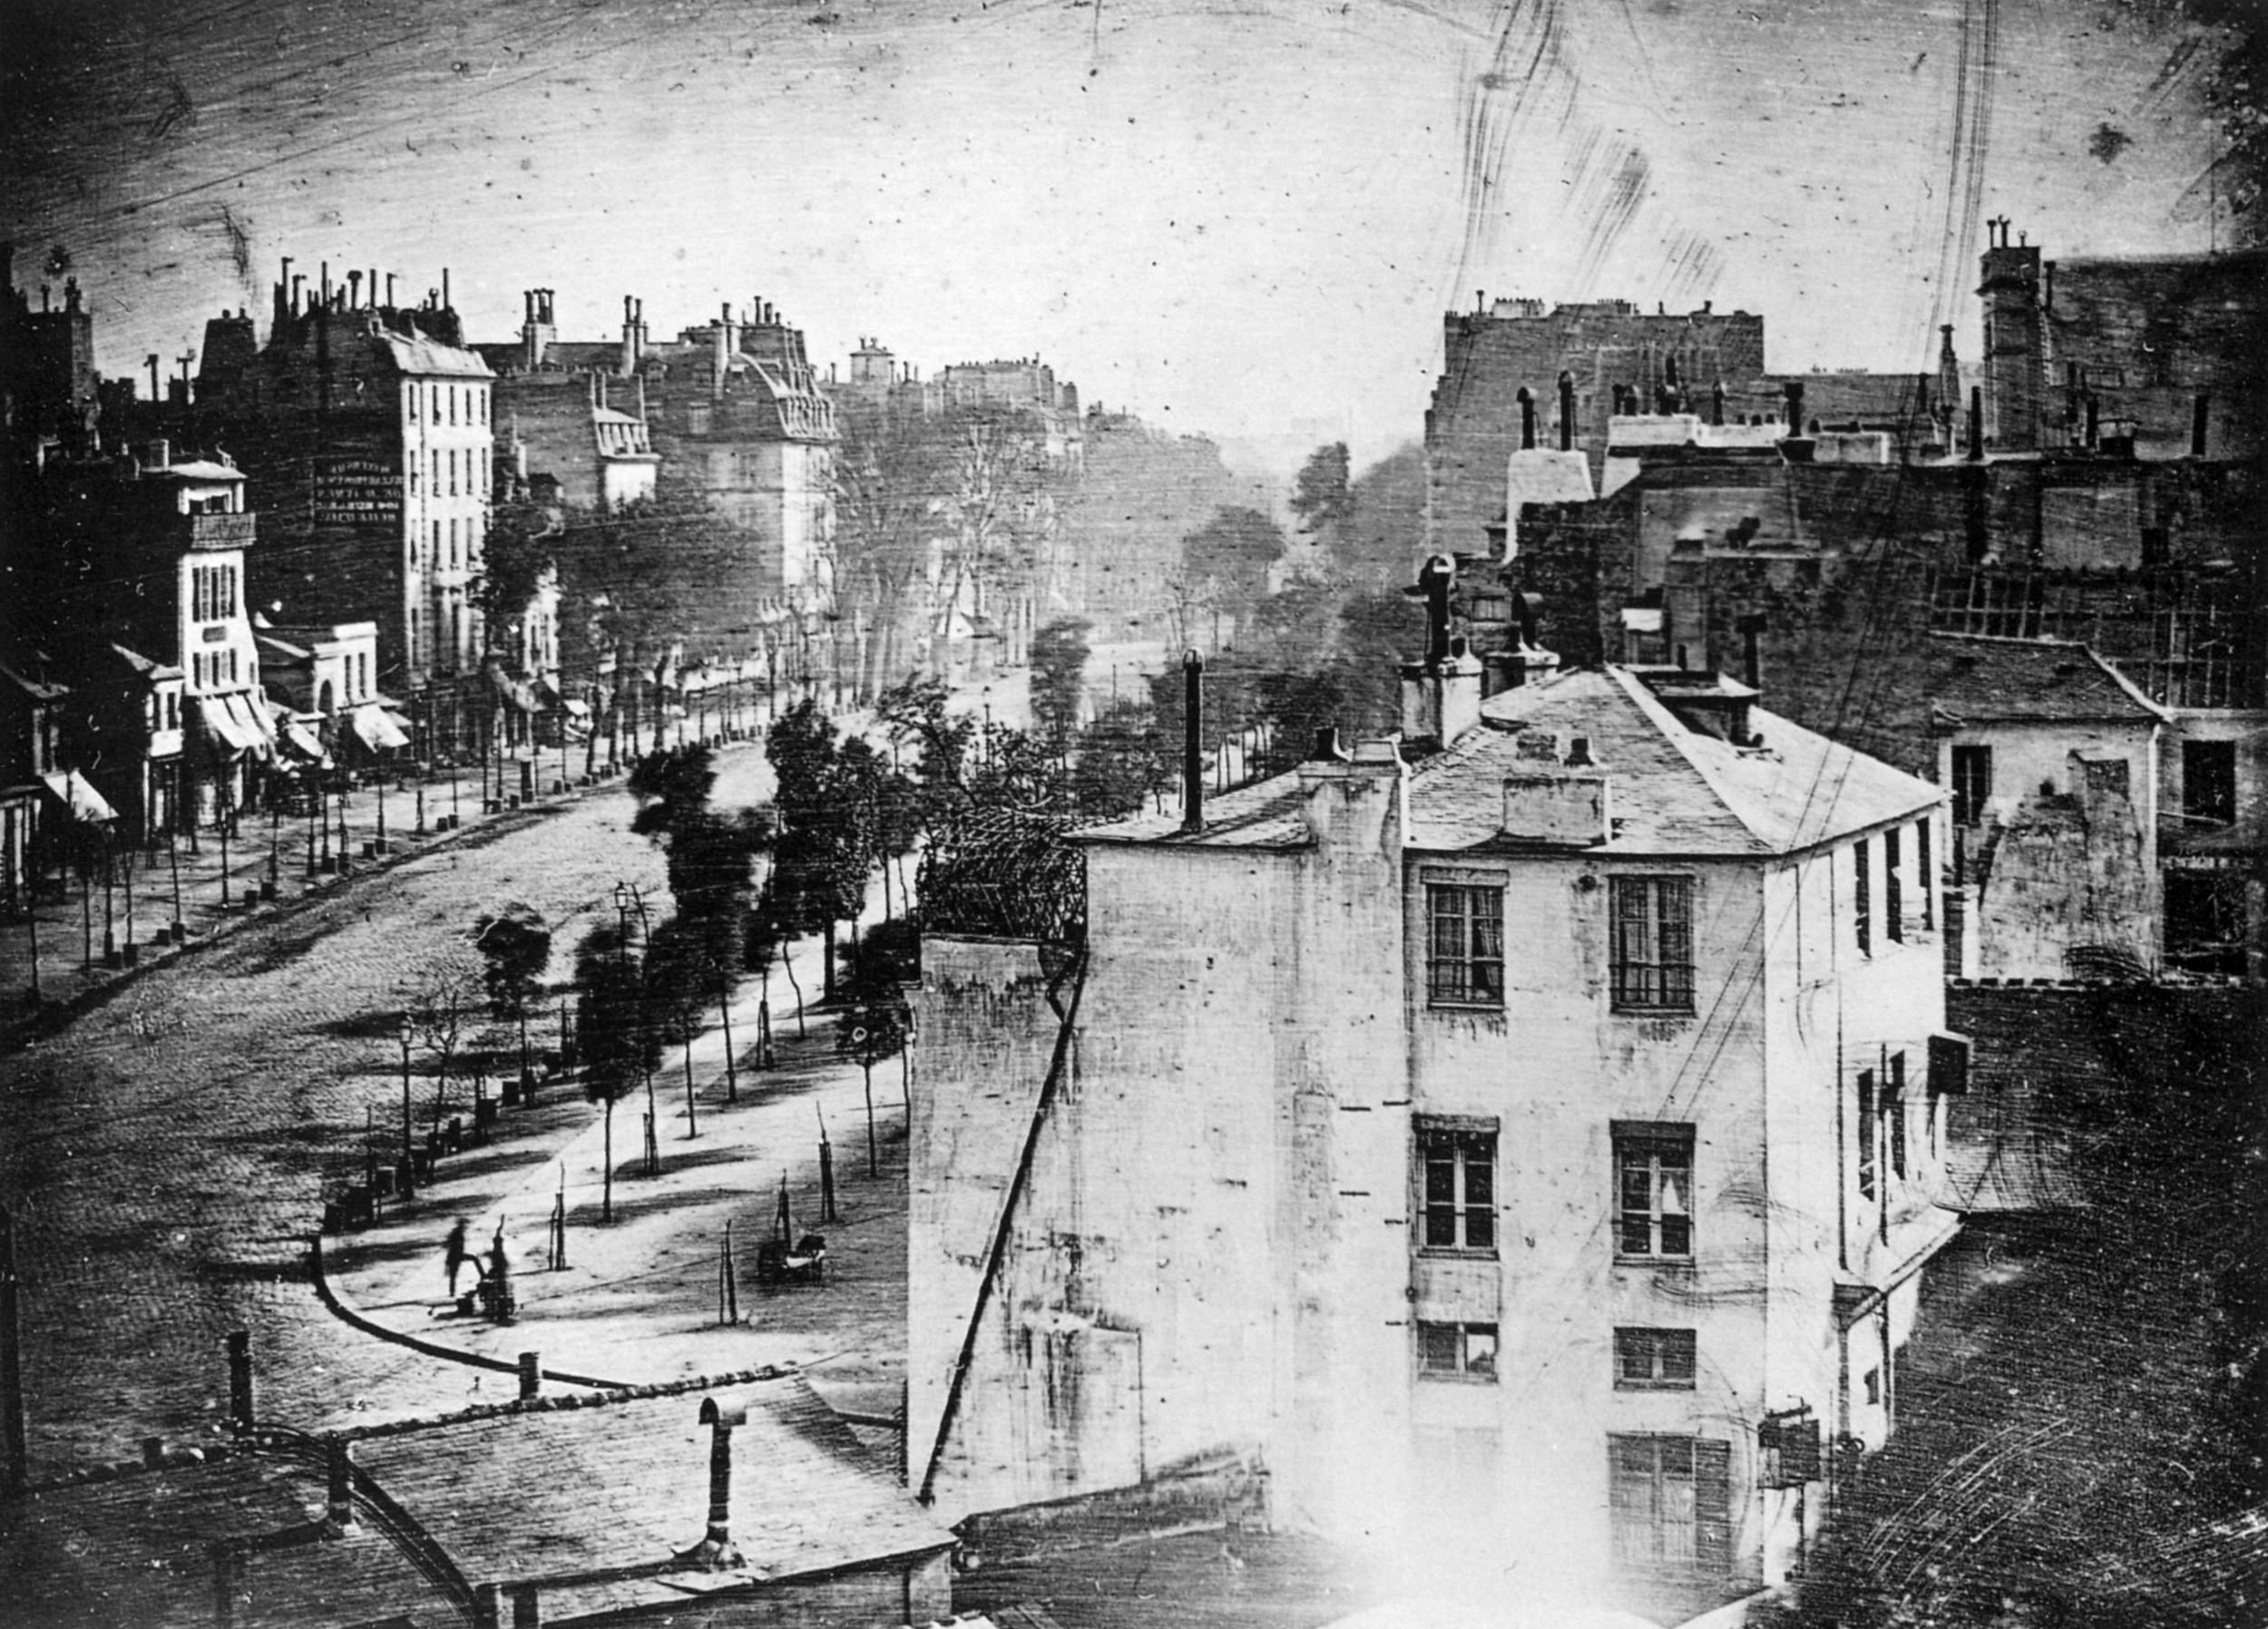 """Photo credit """"Boulevard du Temple by Daguerre"""" by Louis Daguerre - Scanned from The Photography Book, Phaidon Press, London, 1997. Licensed under Public domain via Wikimedia Commons - http://commons.wikimedia.org/wiki/File:Boulevard_du_Temple_by_Daguerre.jpg#mediaviewer/File:Boulevard_du_Temple_by_Daguerre.jpg"""